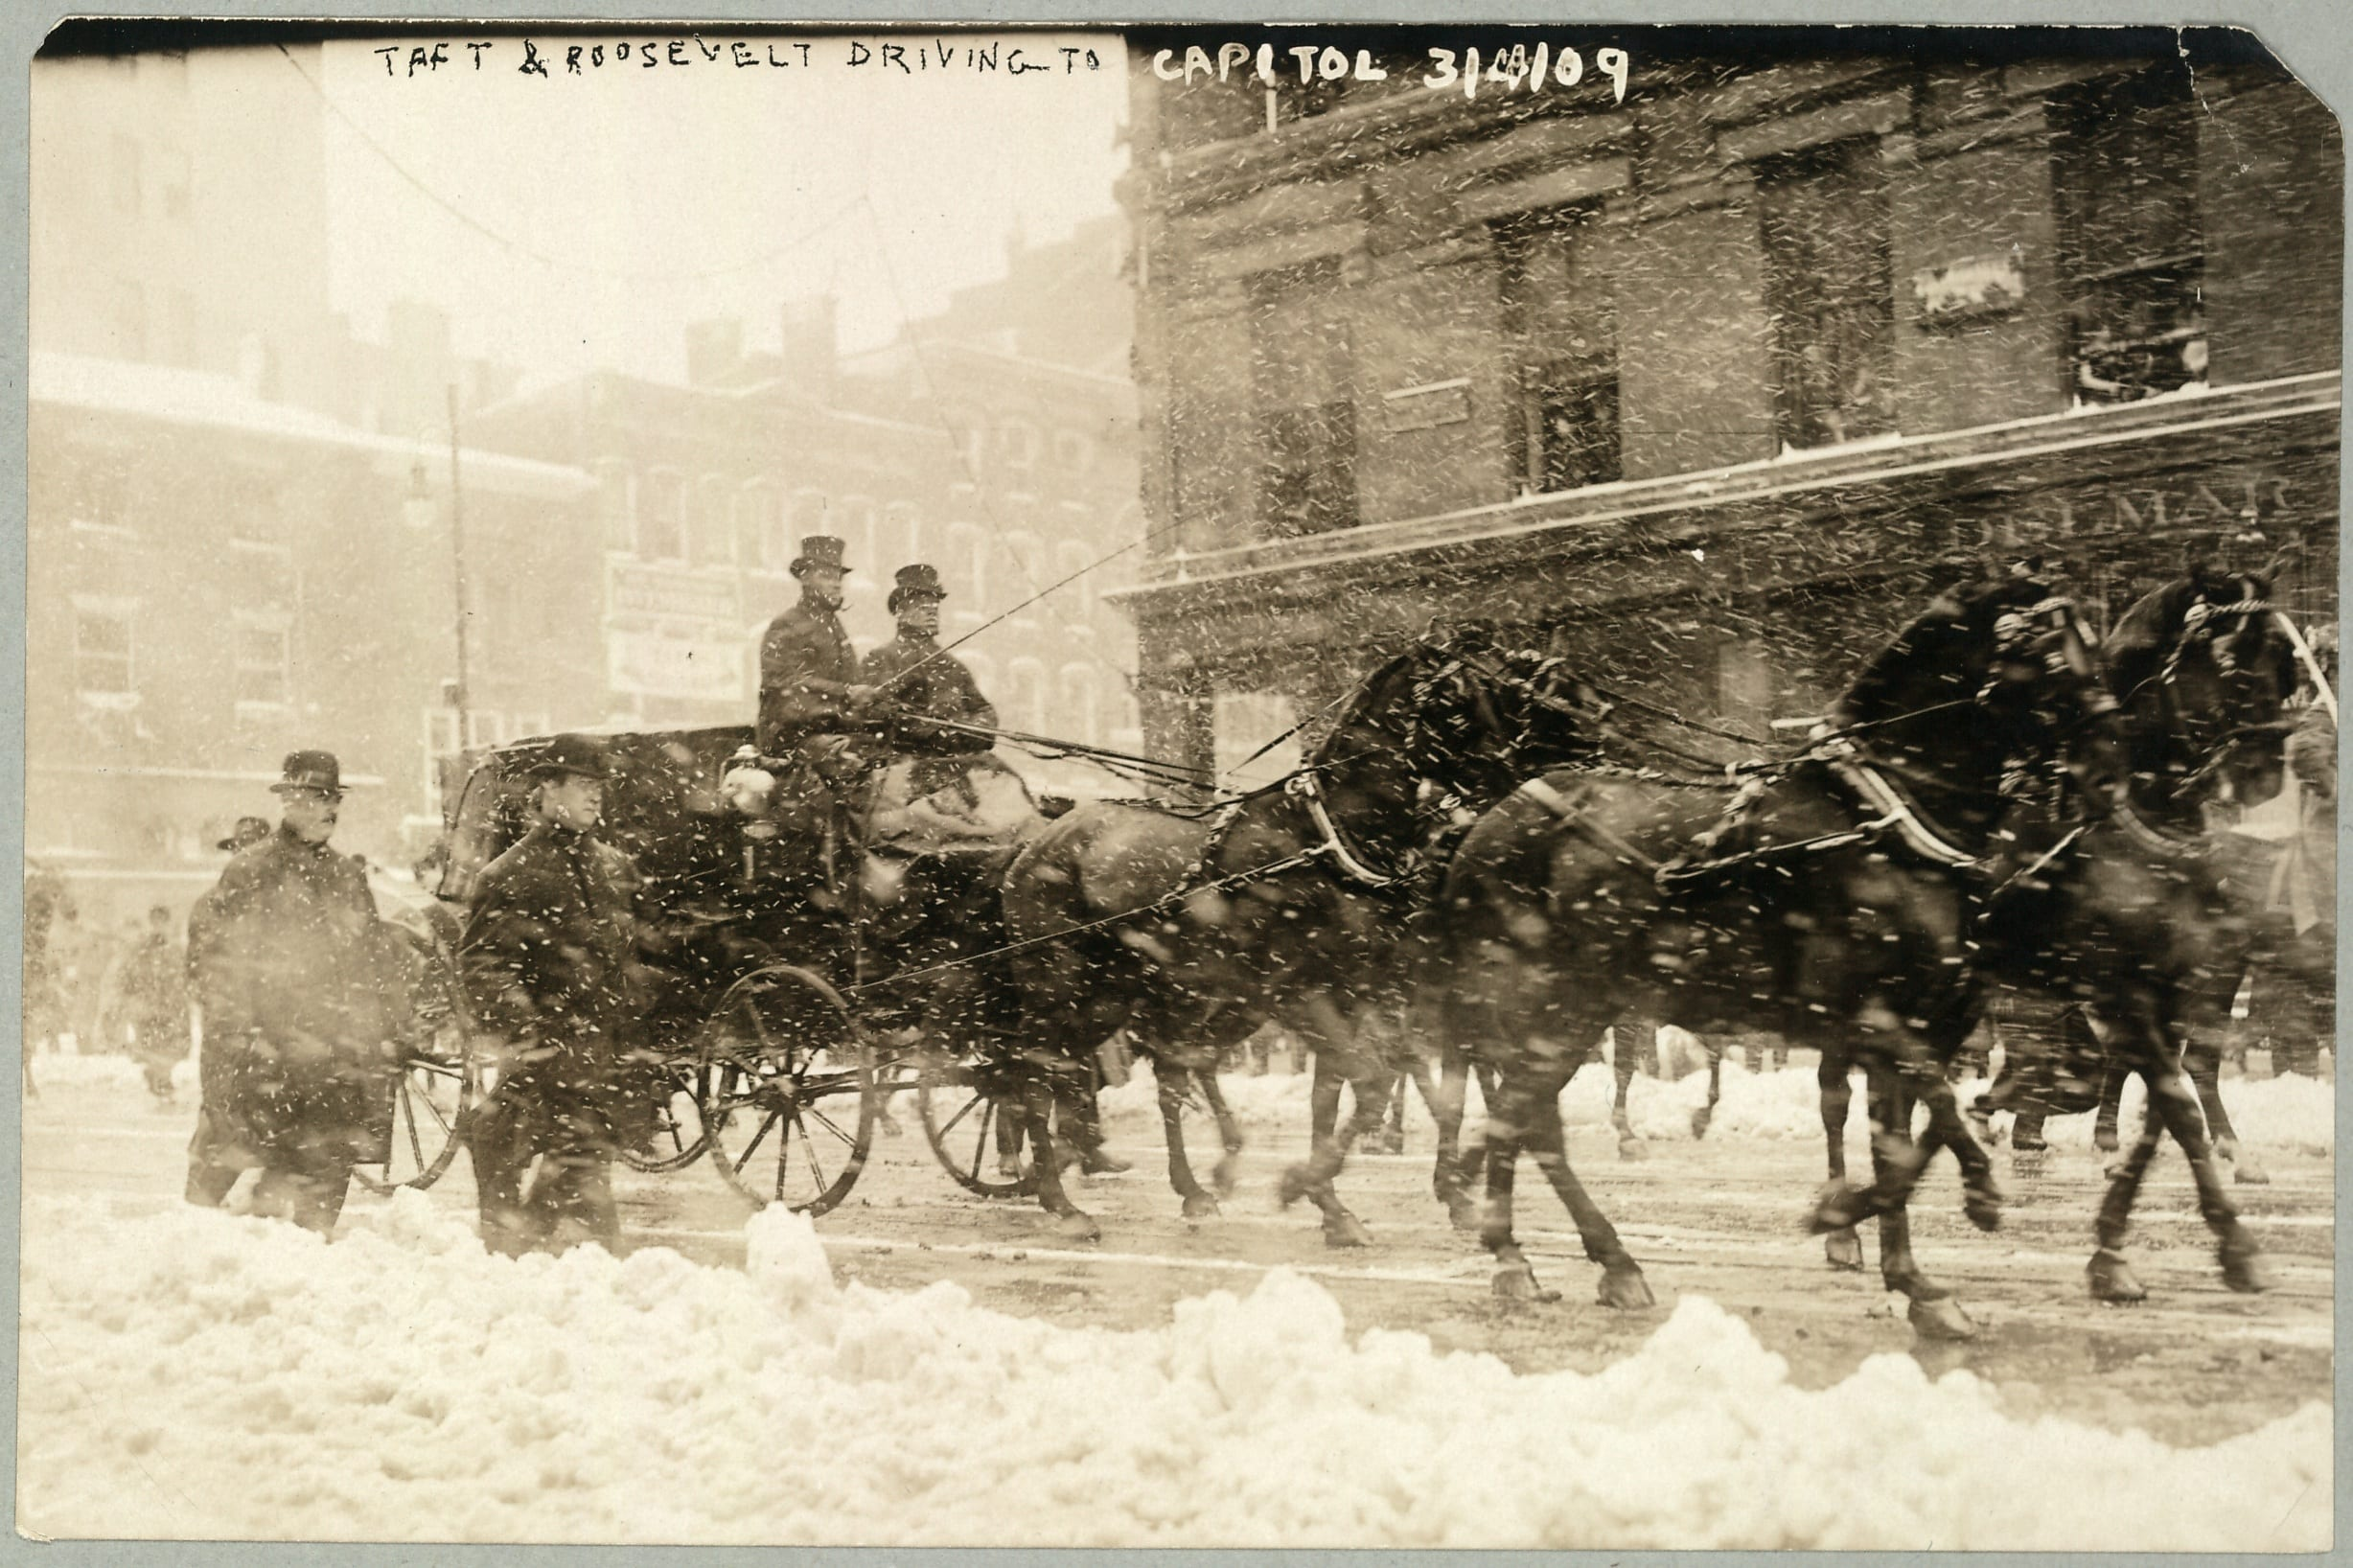 Taft & Roosevelt driving to Capitol, Mar. 4, 1909.